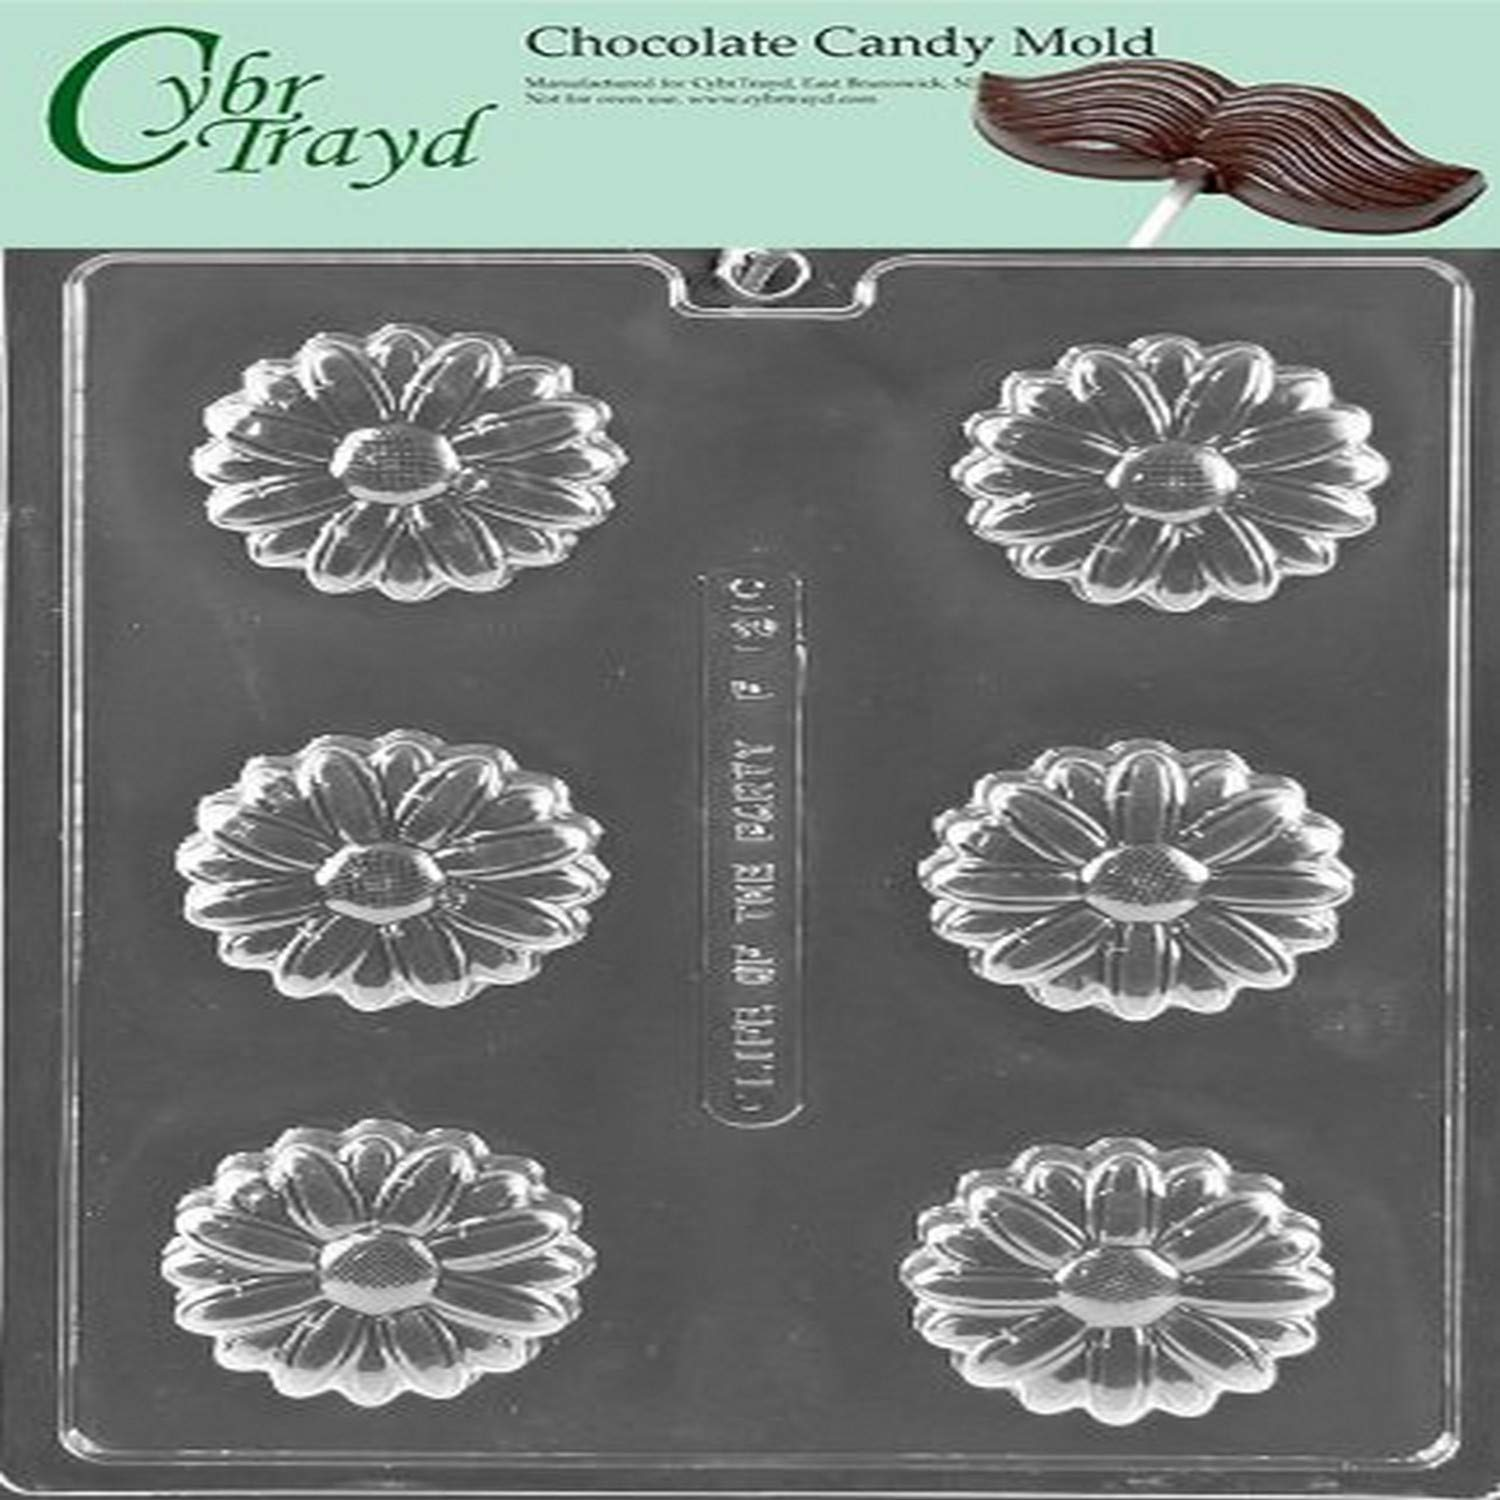 Cybrtrayd Life of the Party F121 Daisy Cookie Flower Soap Chocolate Candy Mold in Sealed Protective Poly Bag Imprinted with Copyrighted Cybrtrayd Molding Instructions